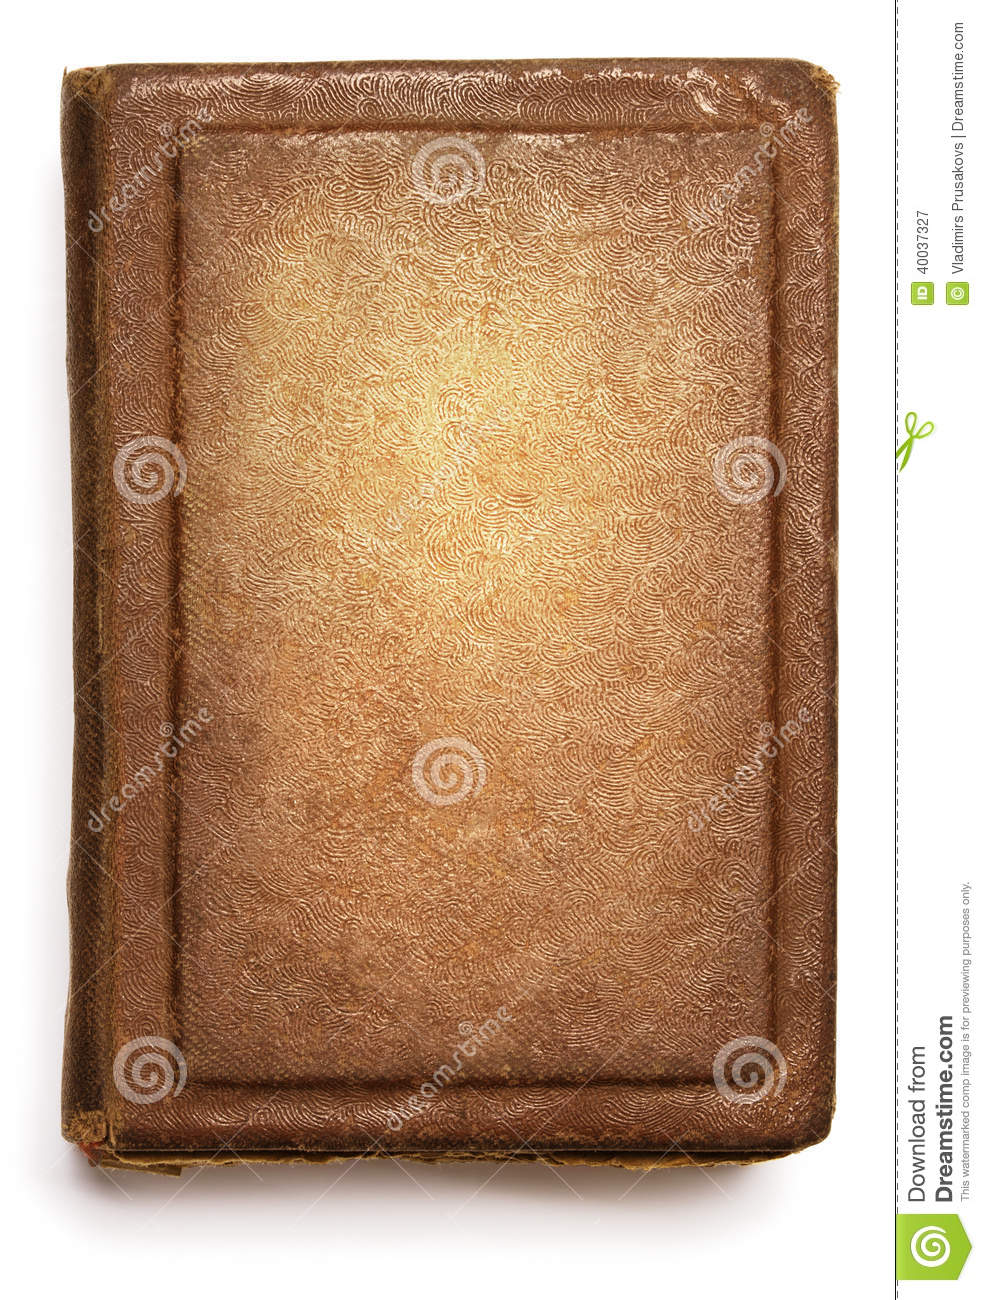 Old Book Cover Pictures : Old book cover blank texture empty grunge design on white